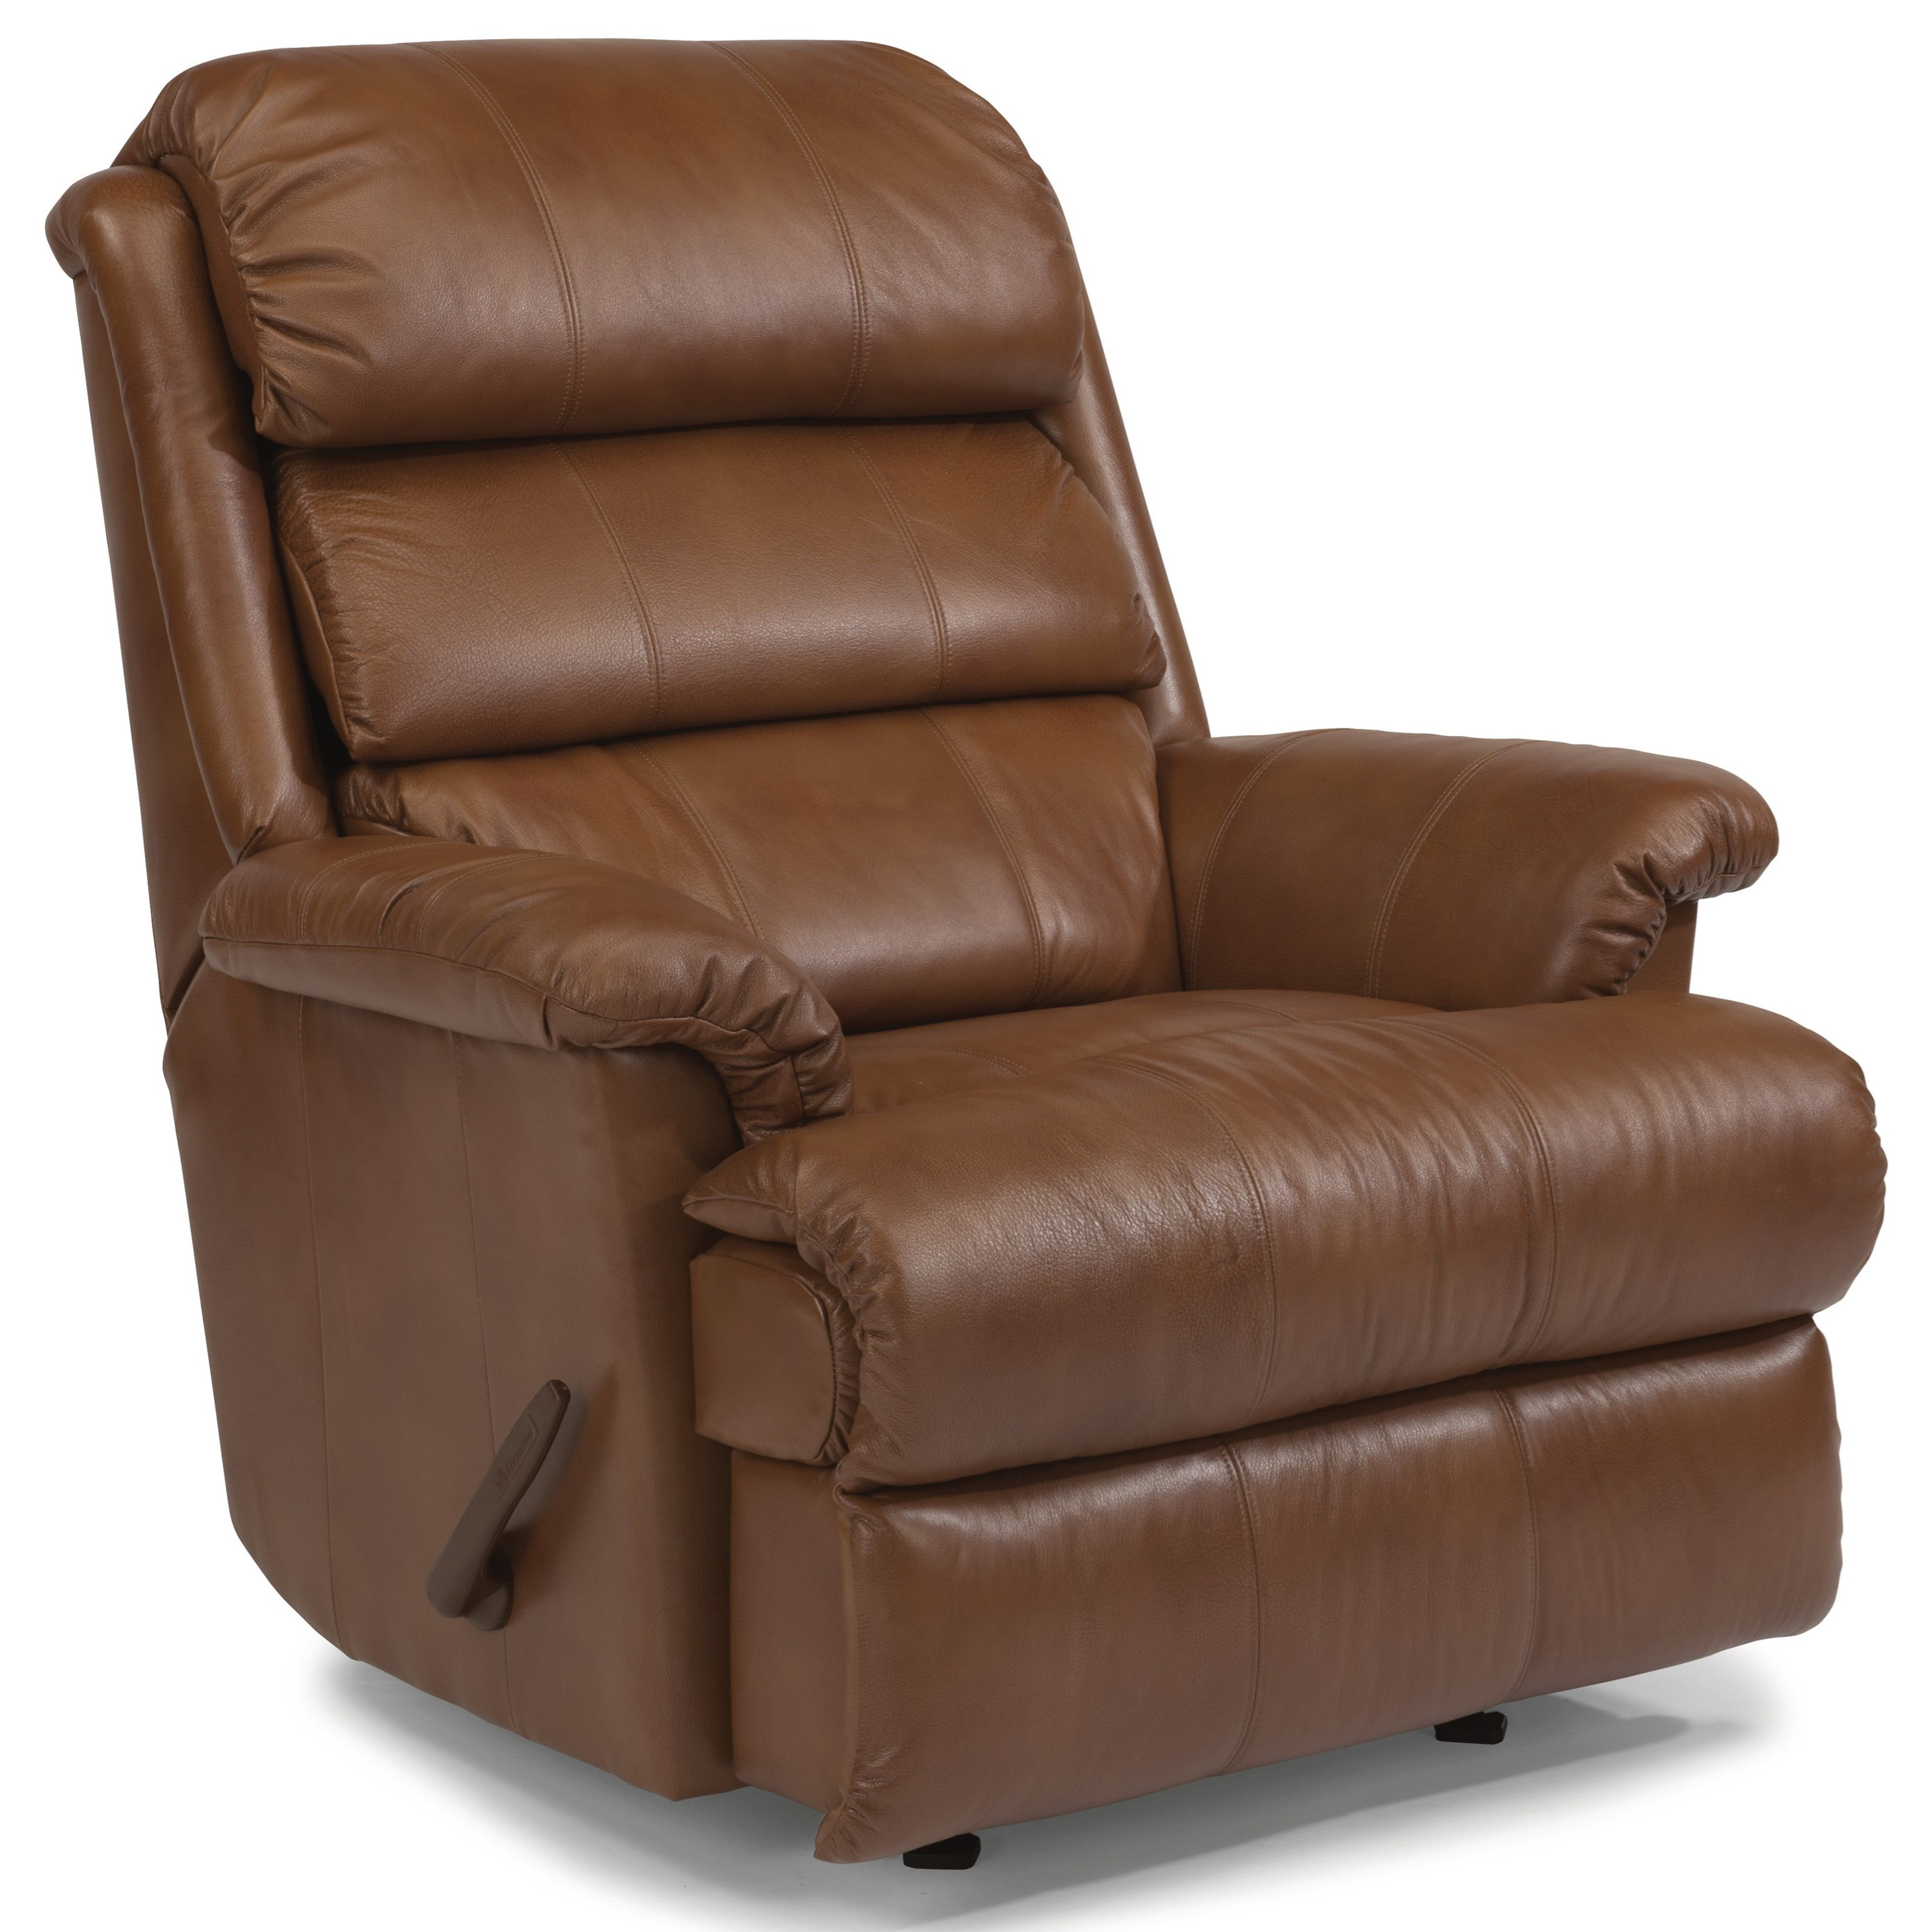 Accents Rocking Recliner by Flexsteel at Steger's Furniture